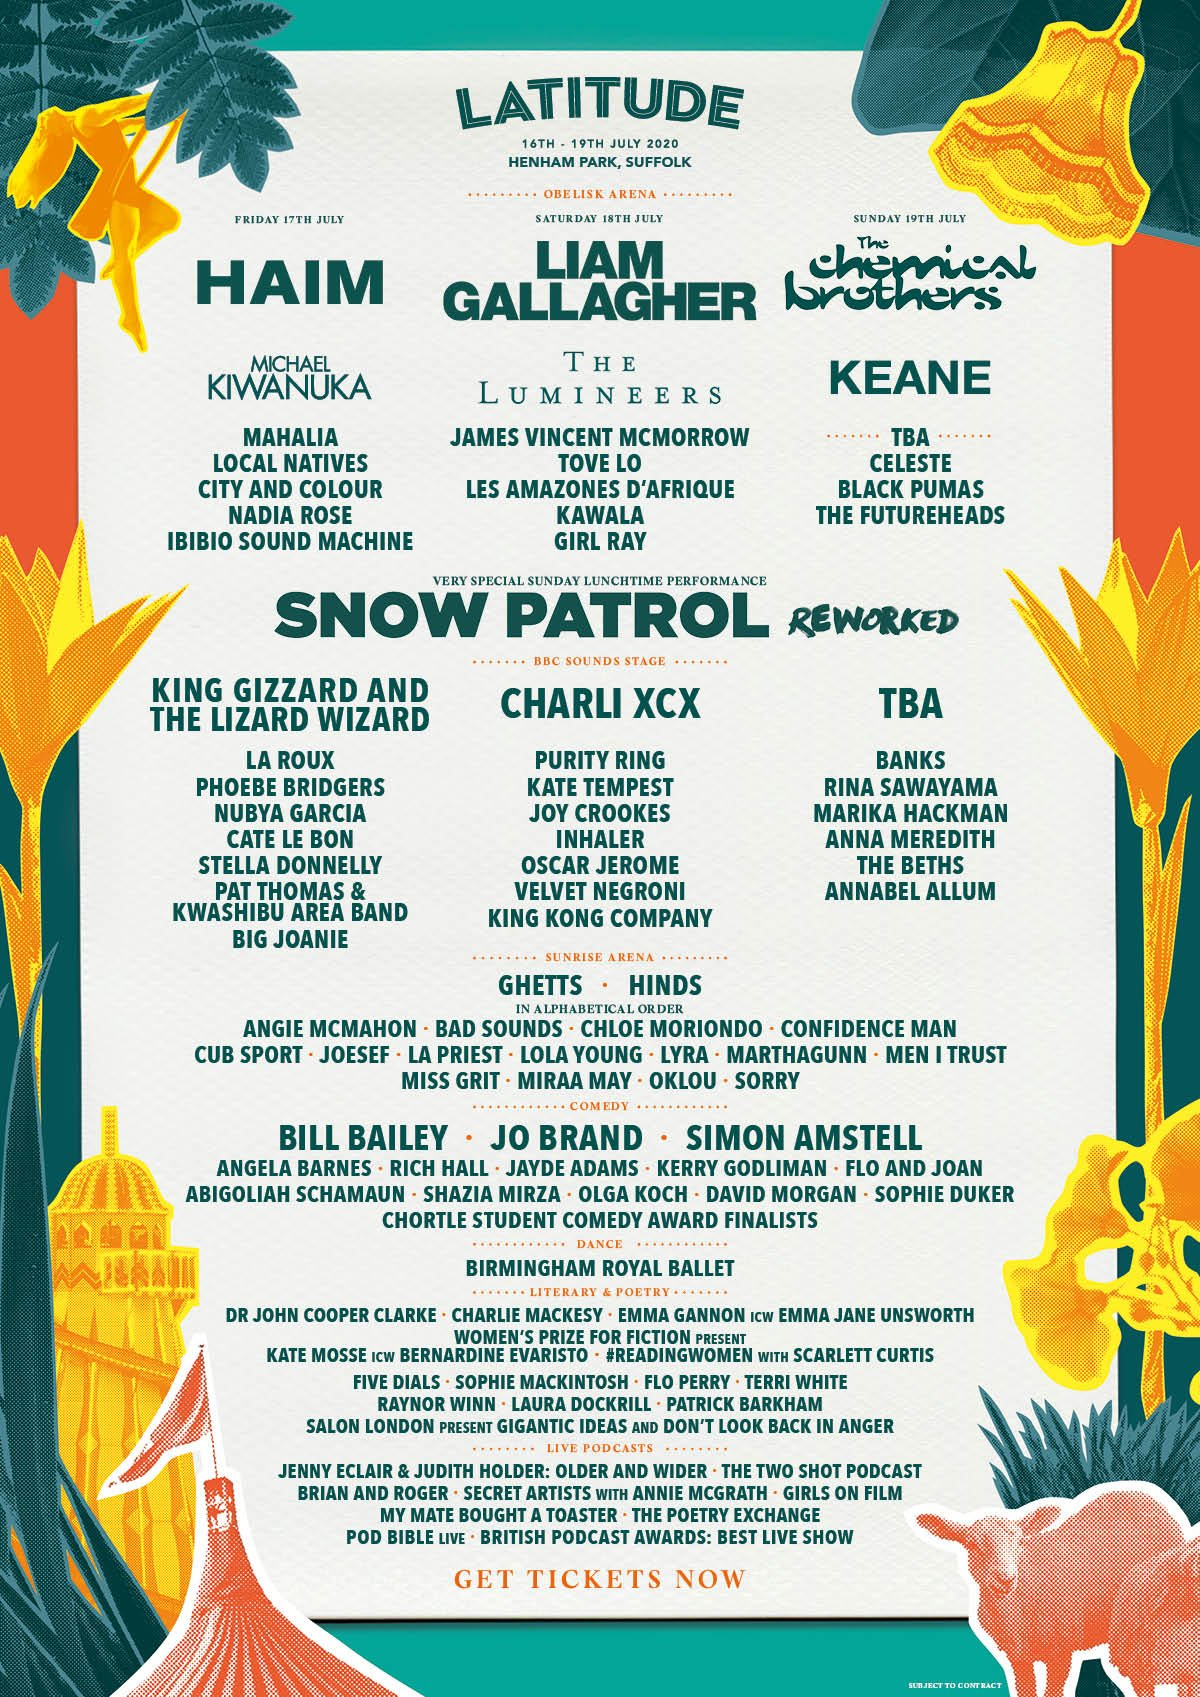 Latitude 2020 Line Up Poster